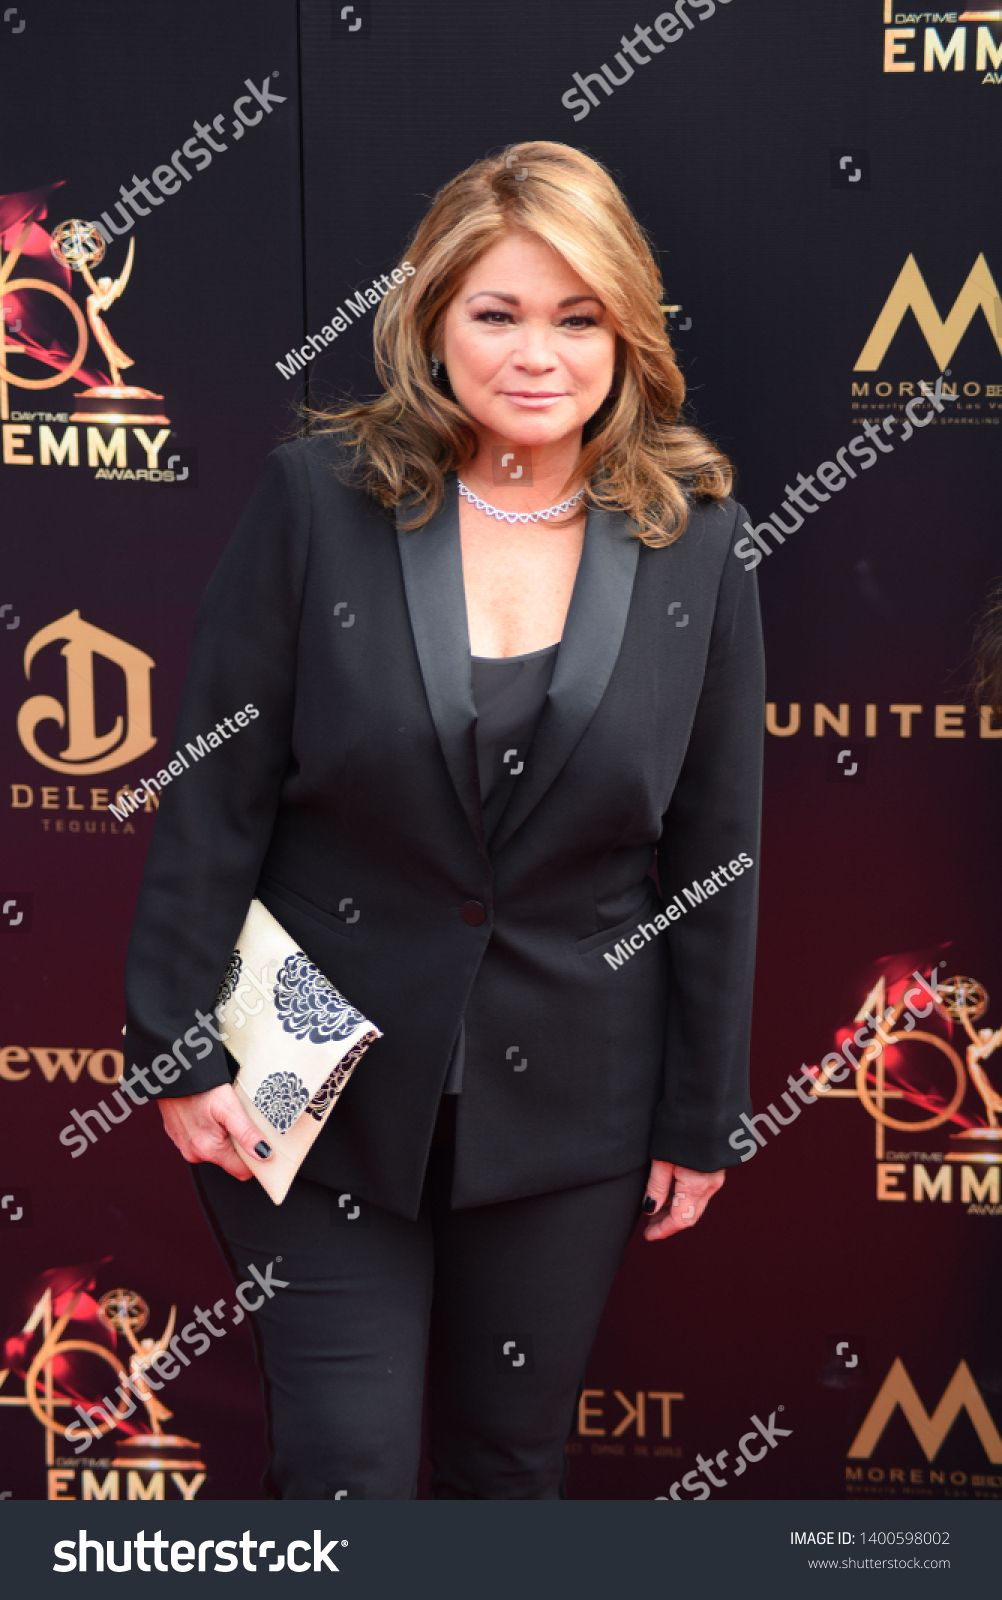 Pasadena Ca U002fusa May 5 2019 Valerie Bertinelli Attends The 2019 Daytime Emmy Awards Ad Ad Valerie Pasadena Cau002 In 2020 Valerie Bertinelli Emmy Awards